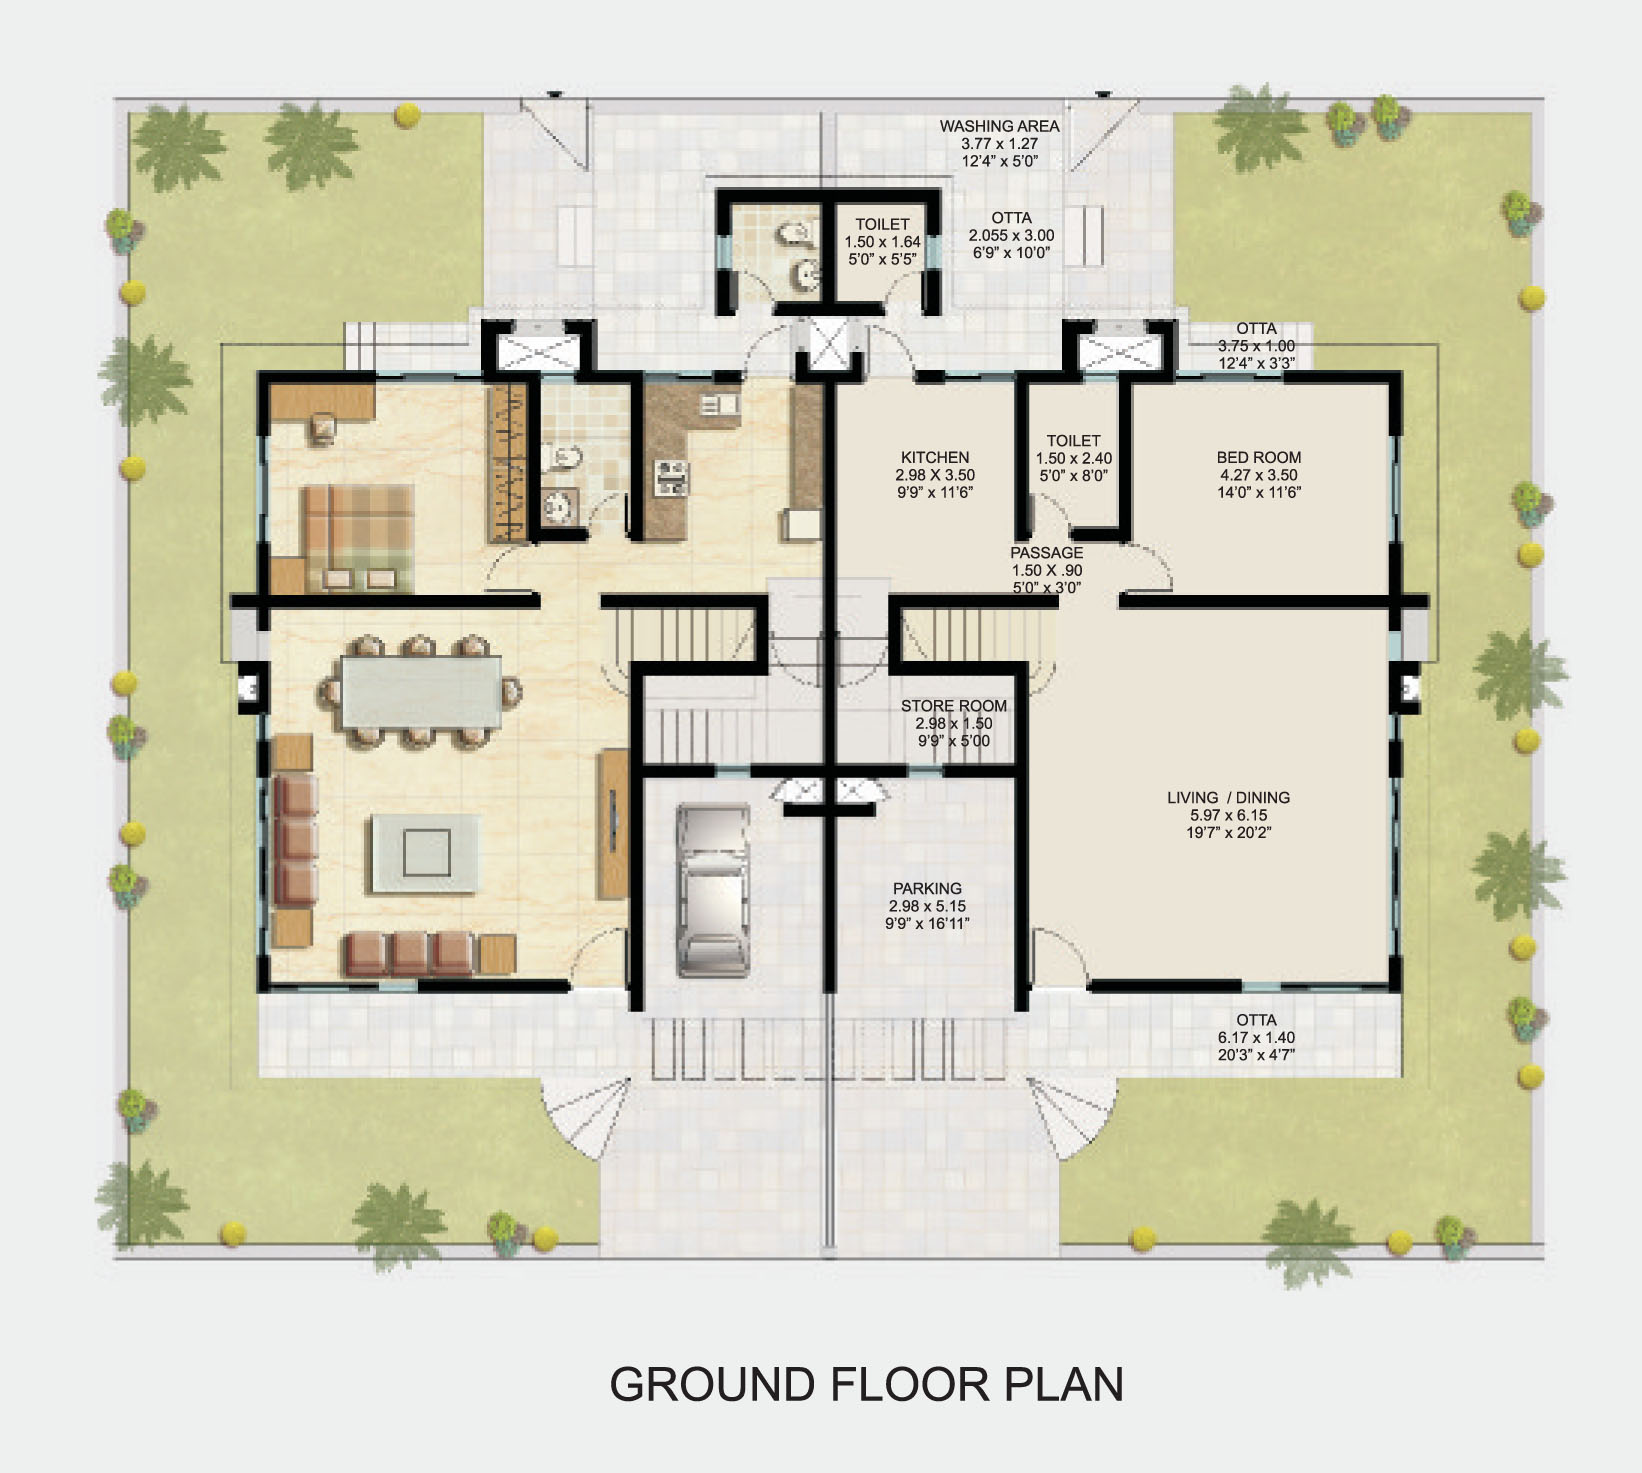 Viva pune floor plans pune india Building floor plans